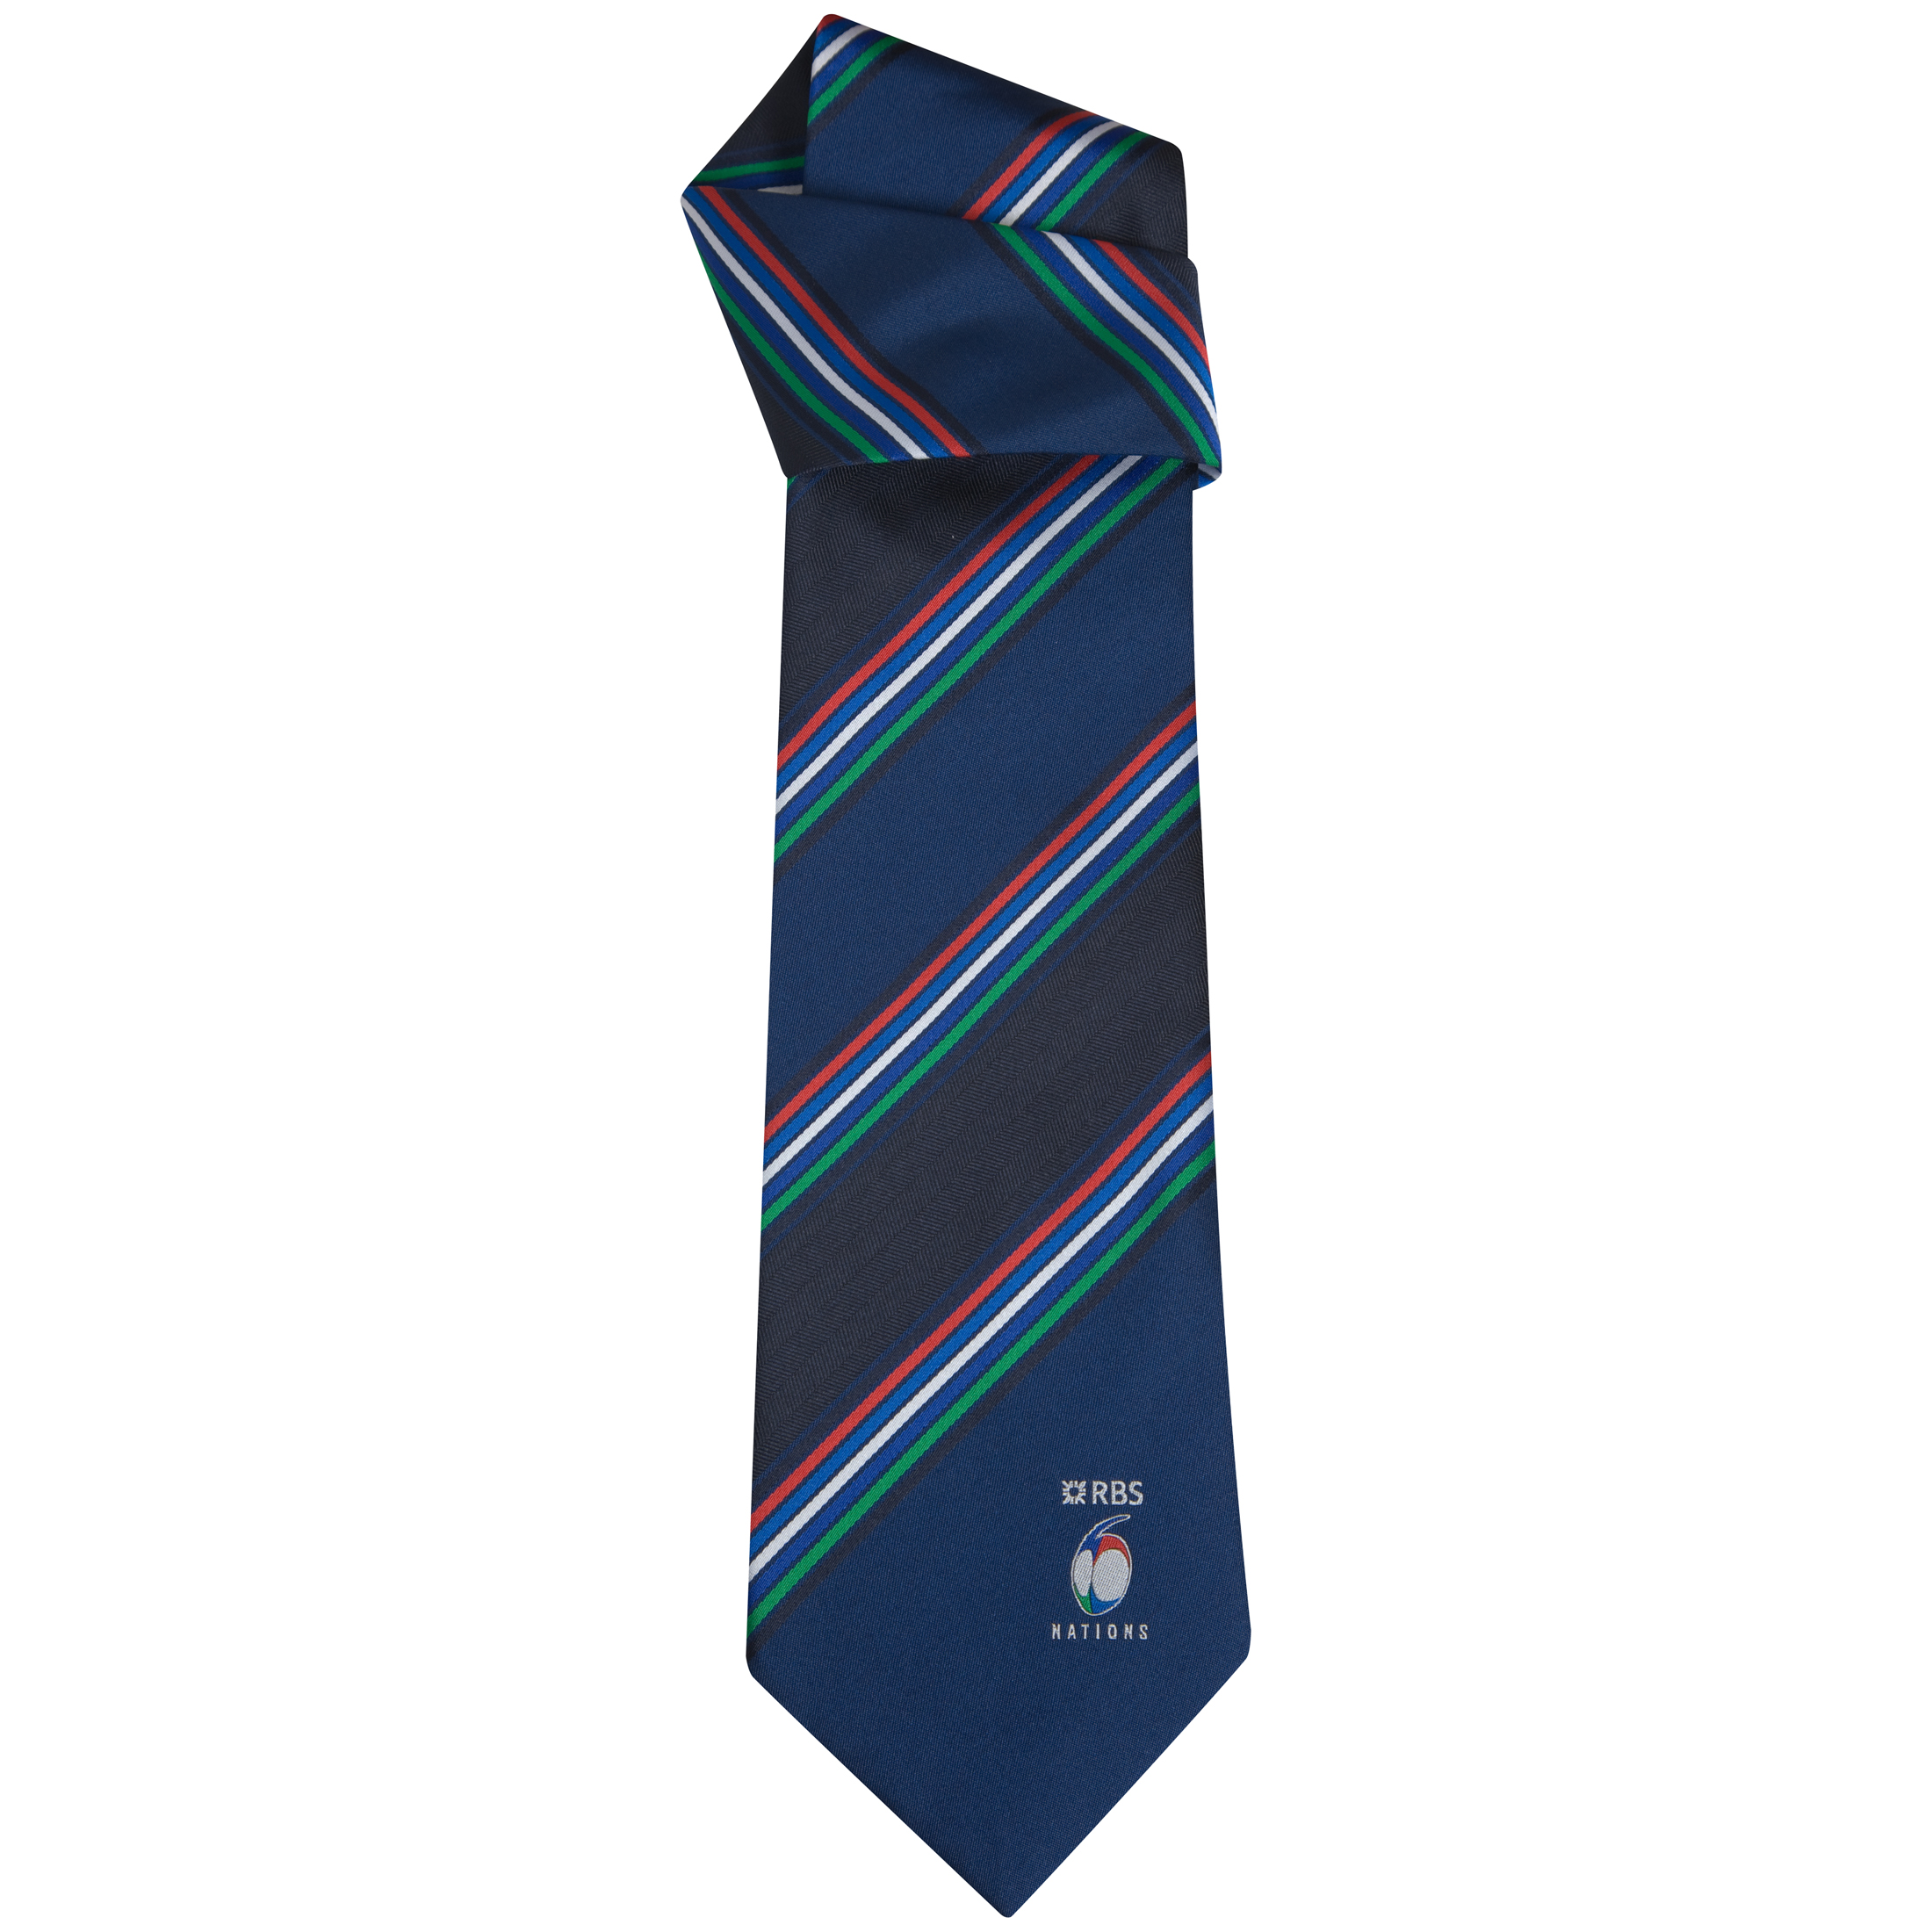 RBS 6 Nations Jacquard Woven Polyester Striped Tie. for 5€